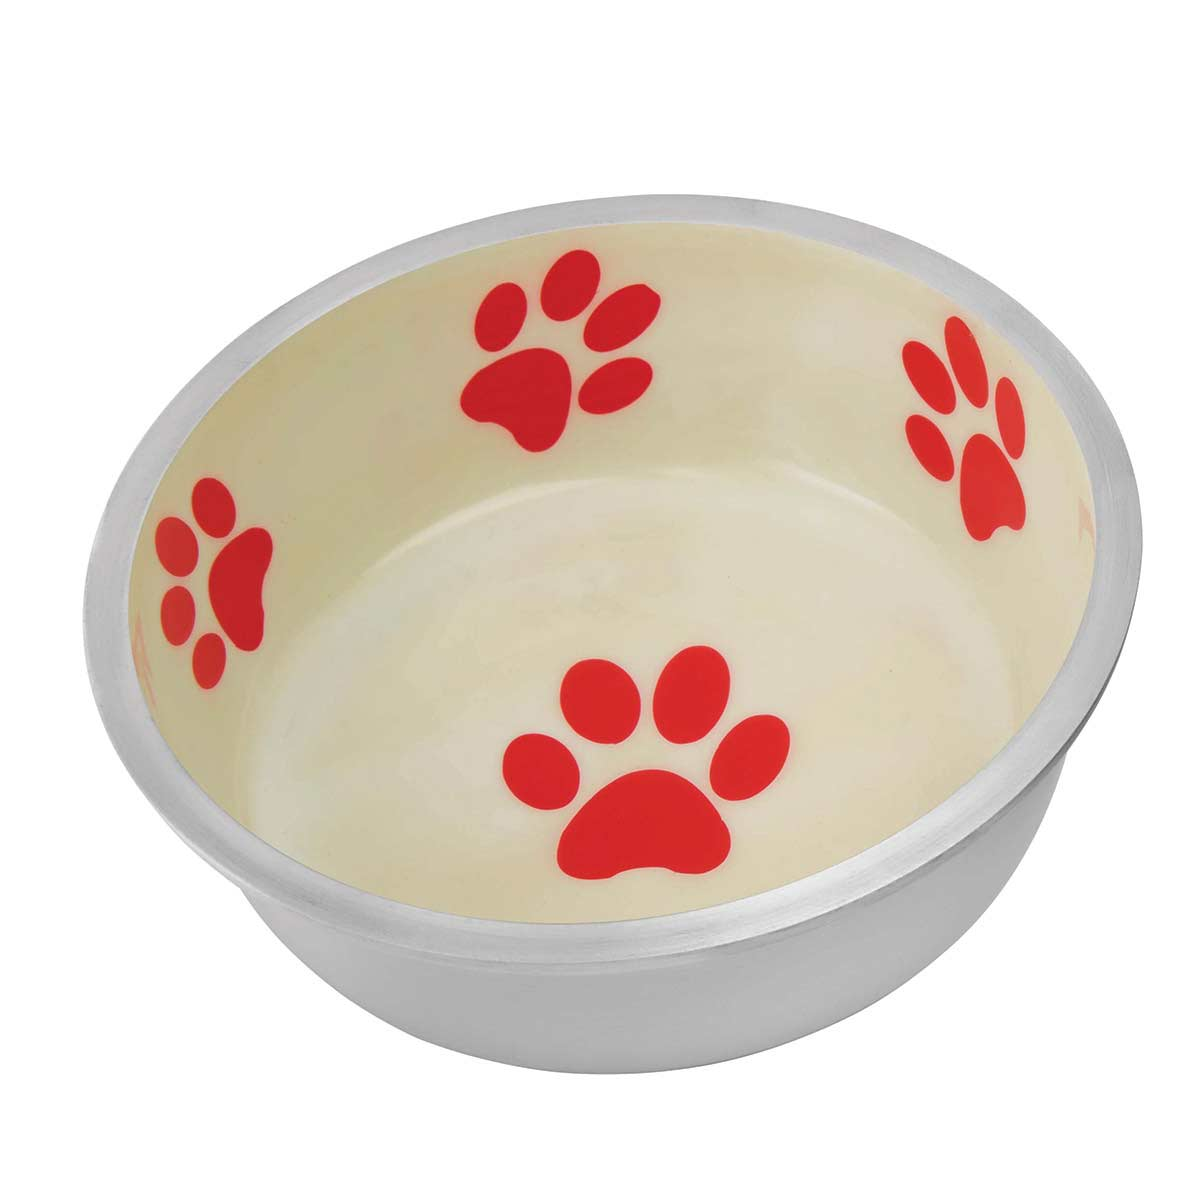 Indipets Super Max X-Small Ivory and Red Bowl for Dogs